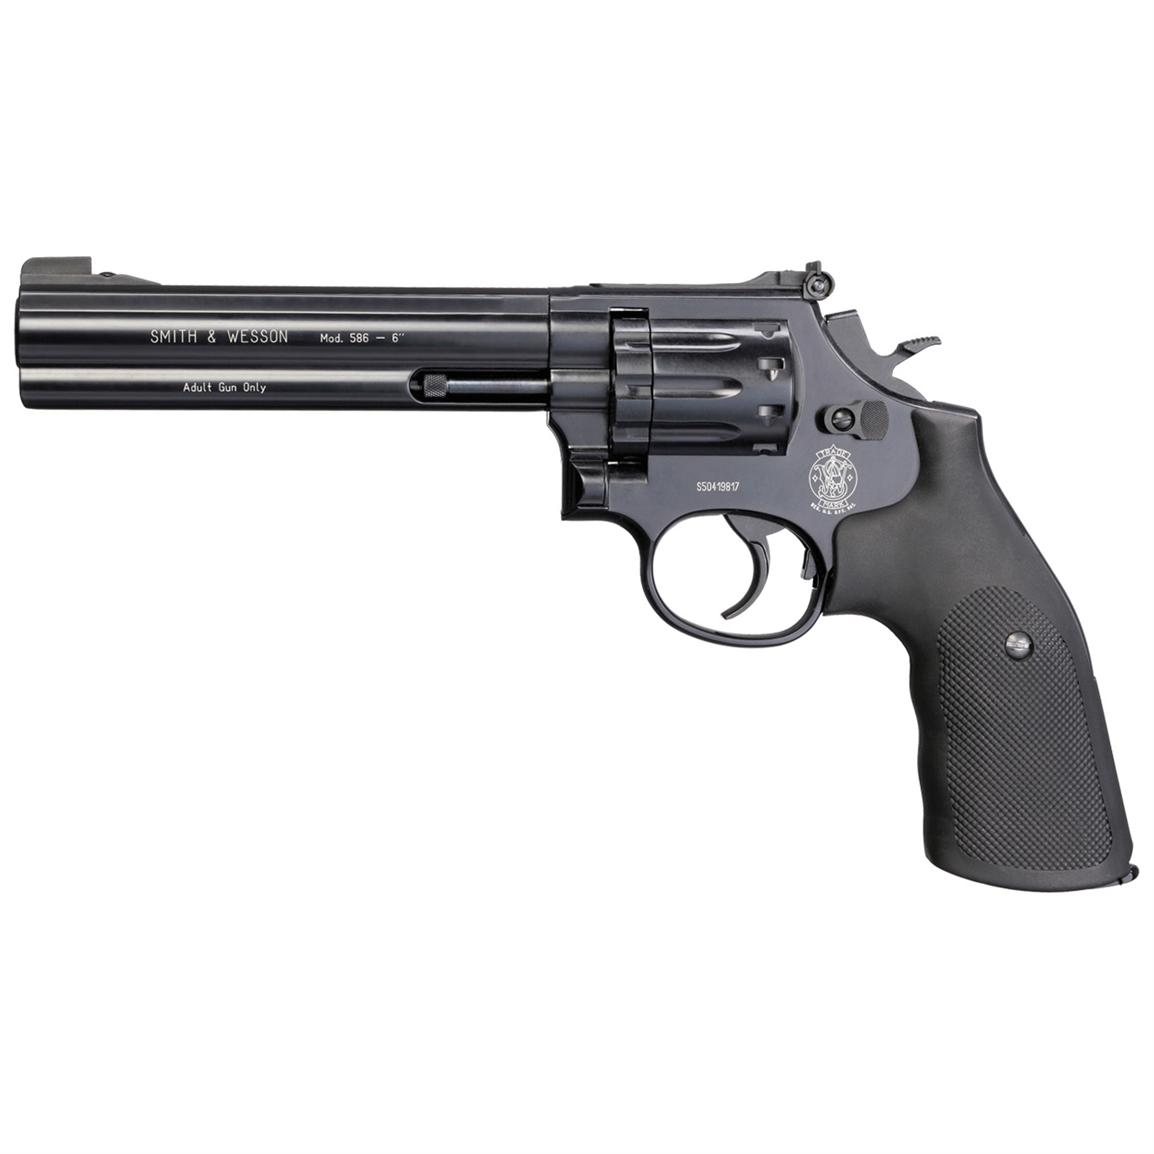 "Smith & Wesson 586 CO2 Revolver, 6"" Barrel"